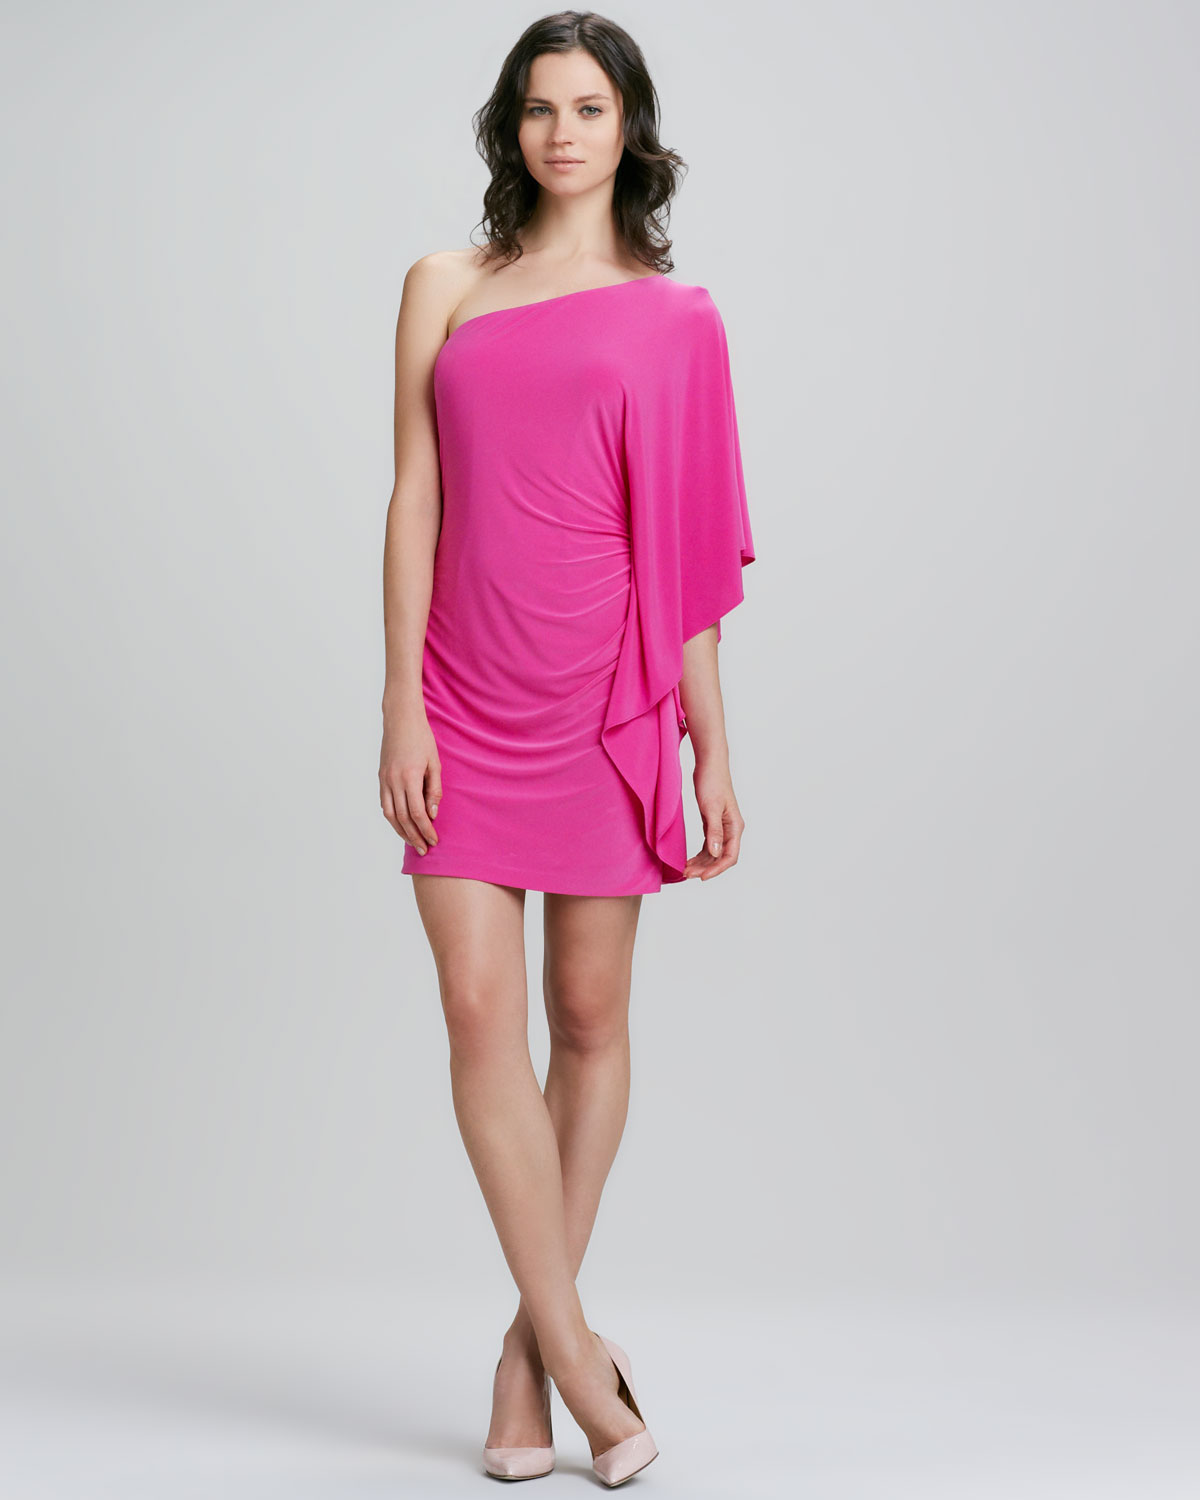 32ec7f74bbc7 Lyst - Trina Turk Cosmic One-Shoulder Ruffle Dress in Pink